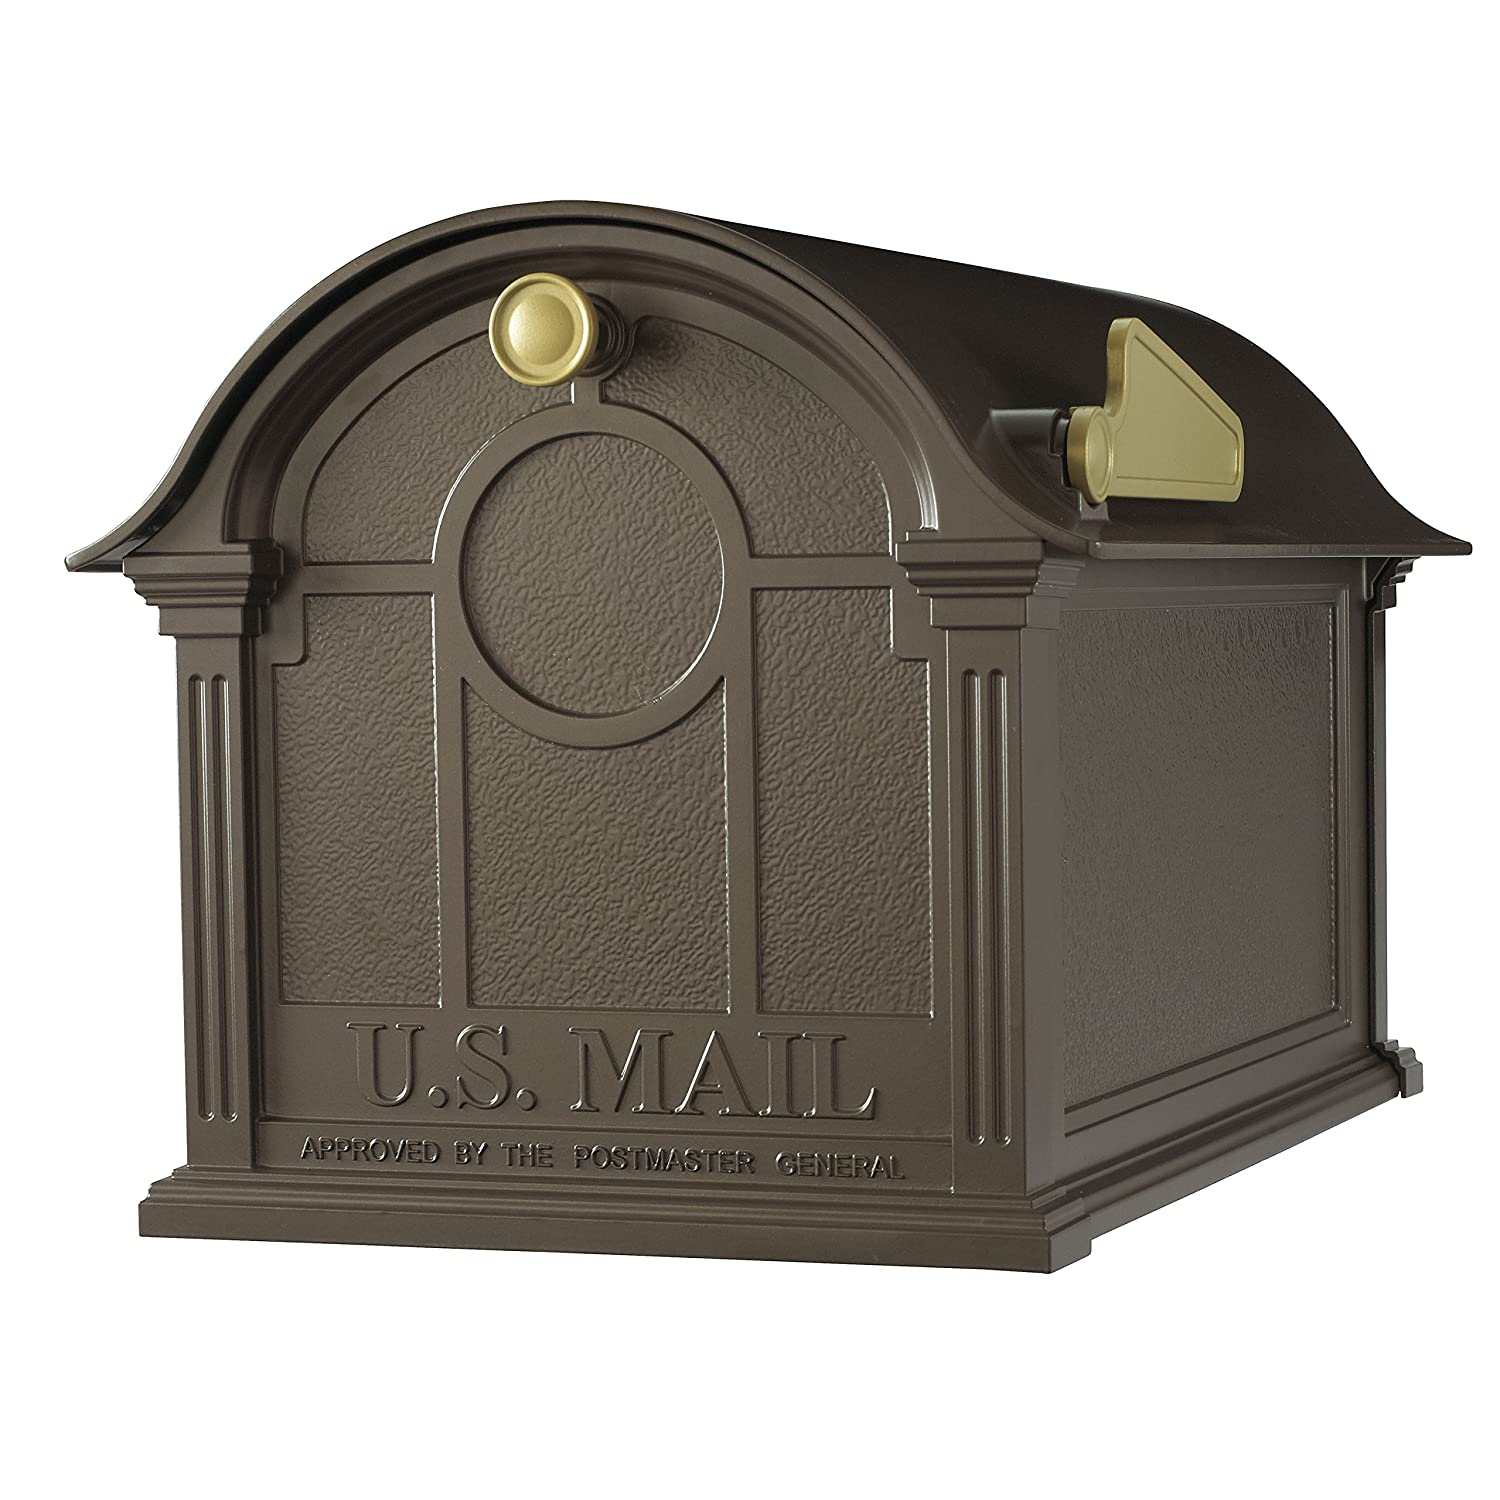 Whitehall Products Balmoral Mailbox, Black 16228